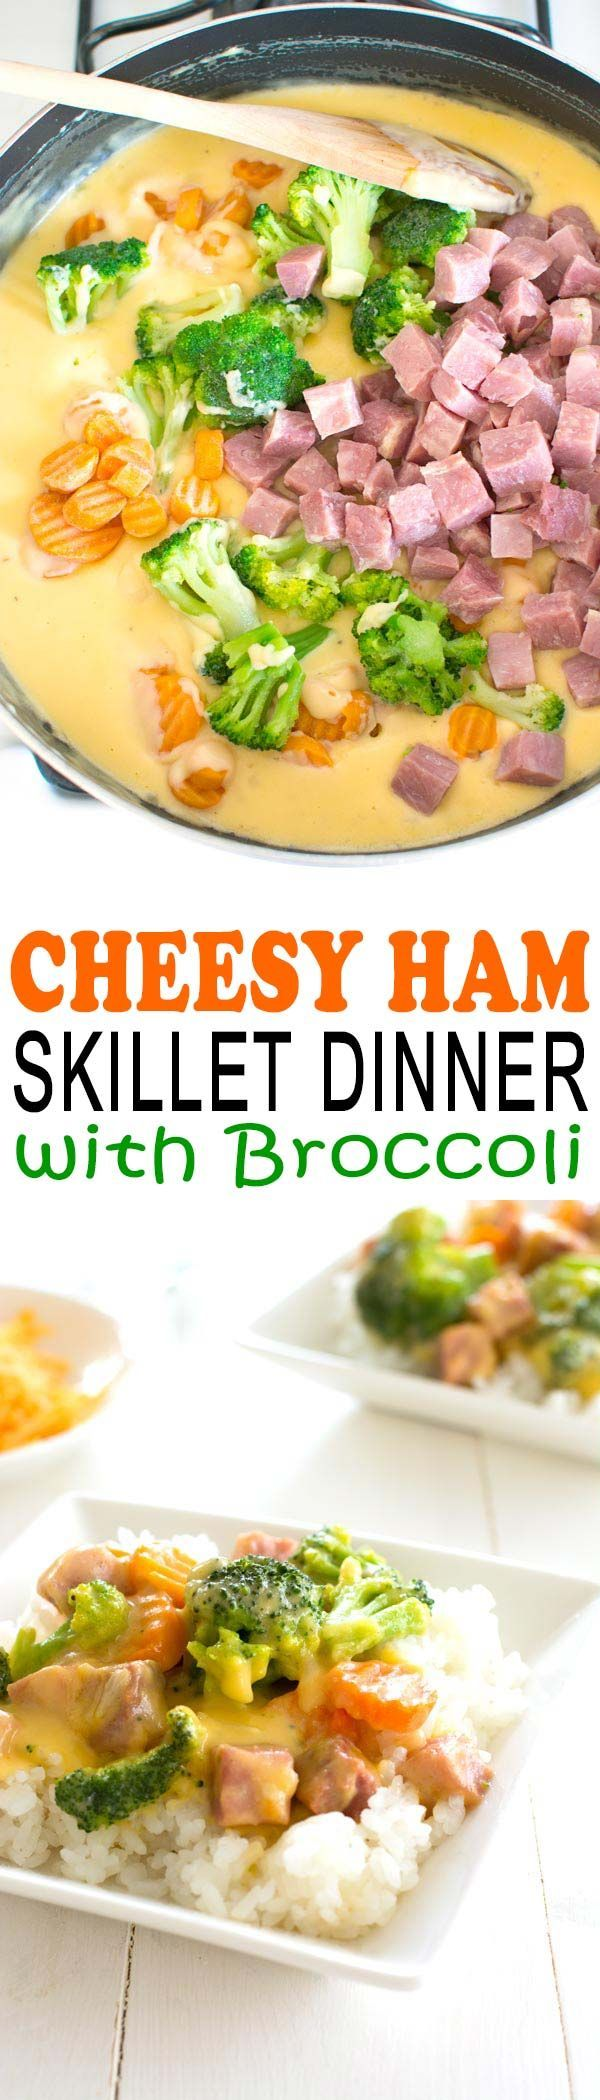 Lightened-up one pan cheesy ham dinner with broccoli. Use up that leftover ham!